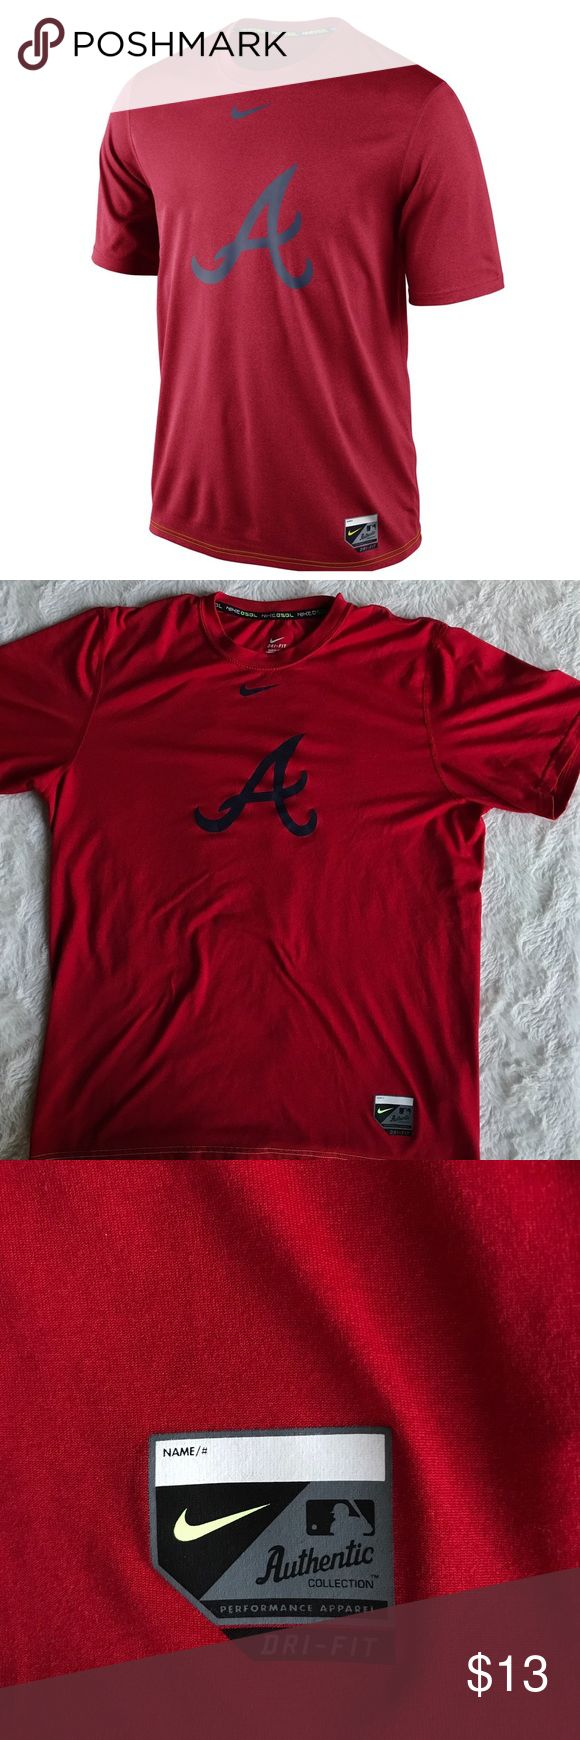 Nike Men'S Atlanta Braves Dri-Fit Legend T-Shirt Pre-owned in good condition no flaws All items are honestly presented to the best of my knowledge, and are stored in a non-smoking environment. Item is in great condition unless noted. No returns 